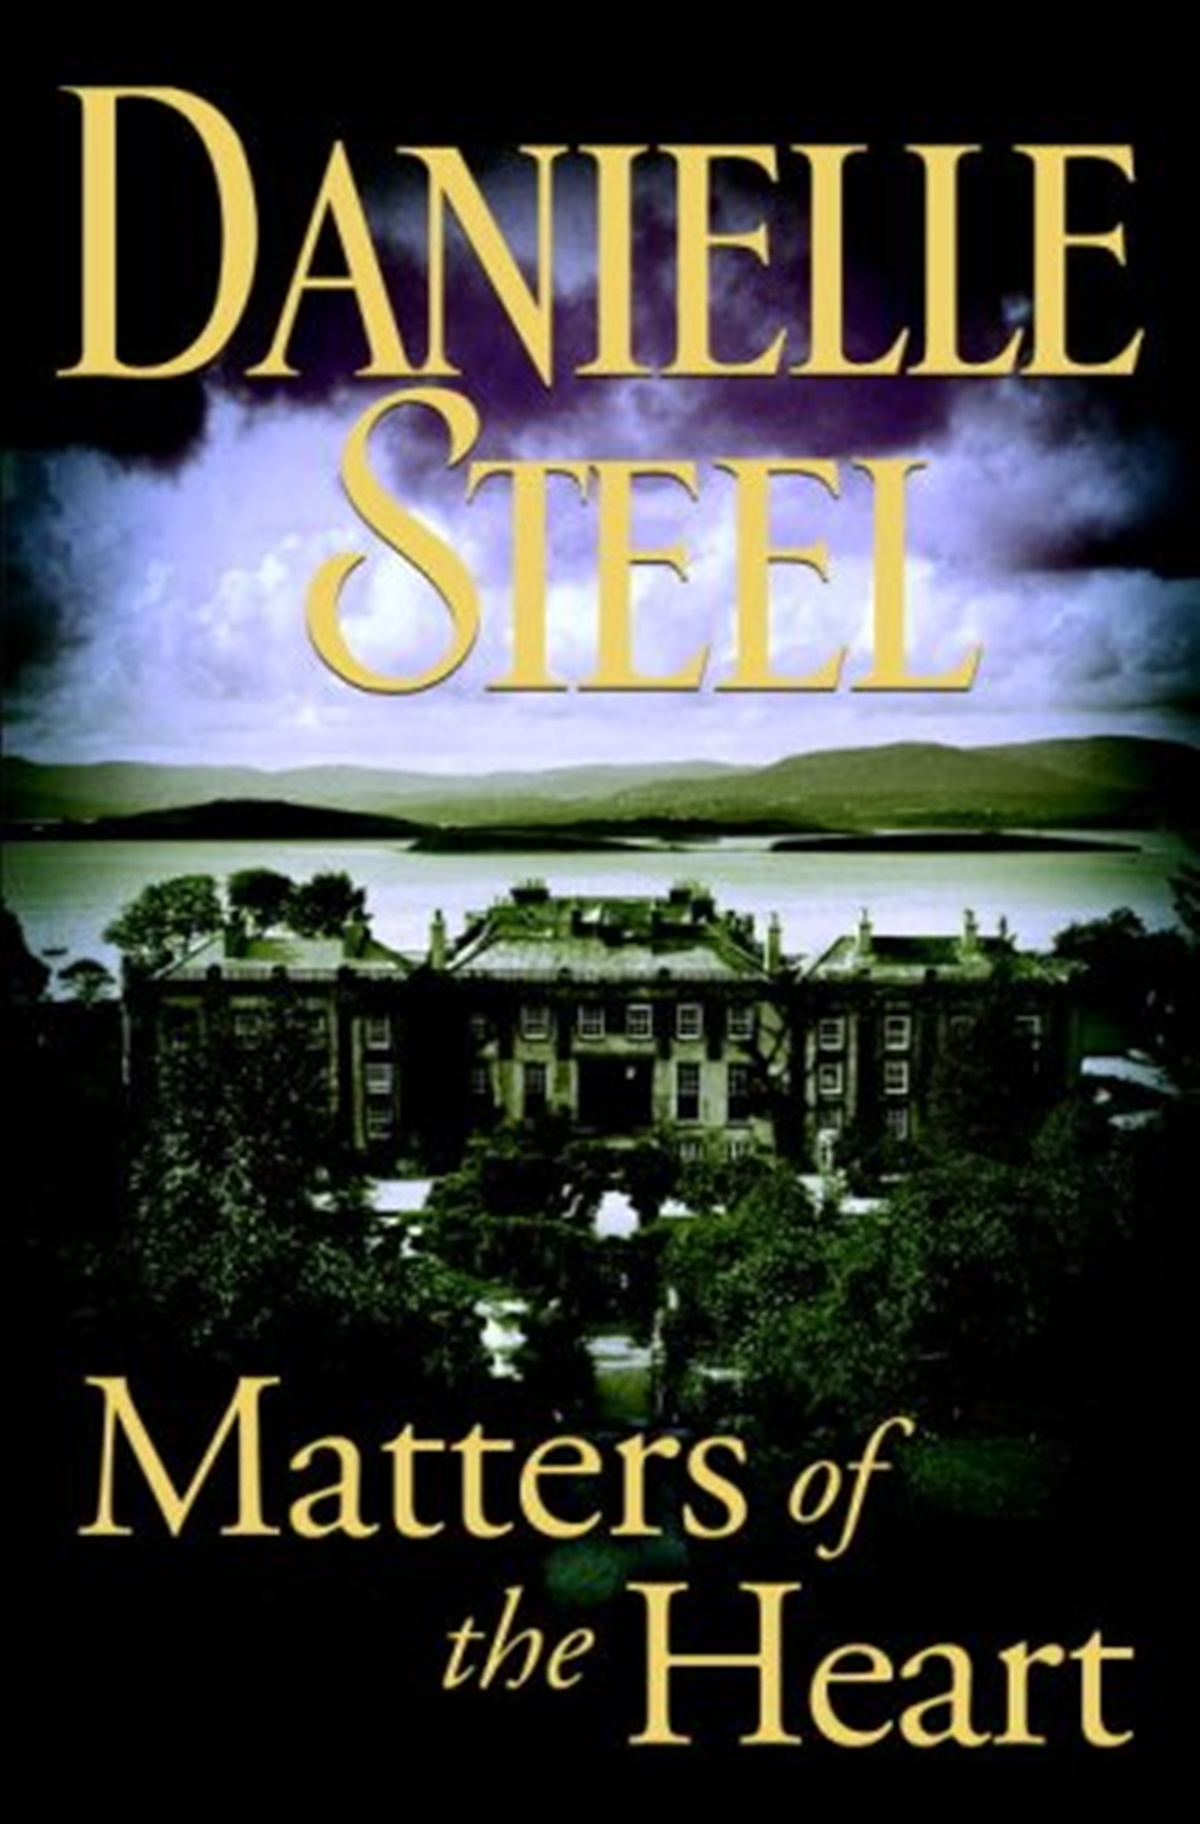 Danielle Steel Books, cover of Matters of the Heart by Danielle Heart, books